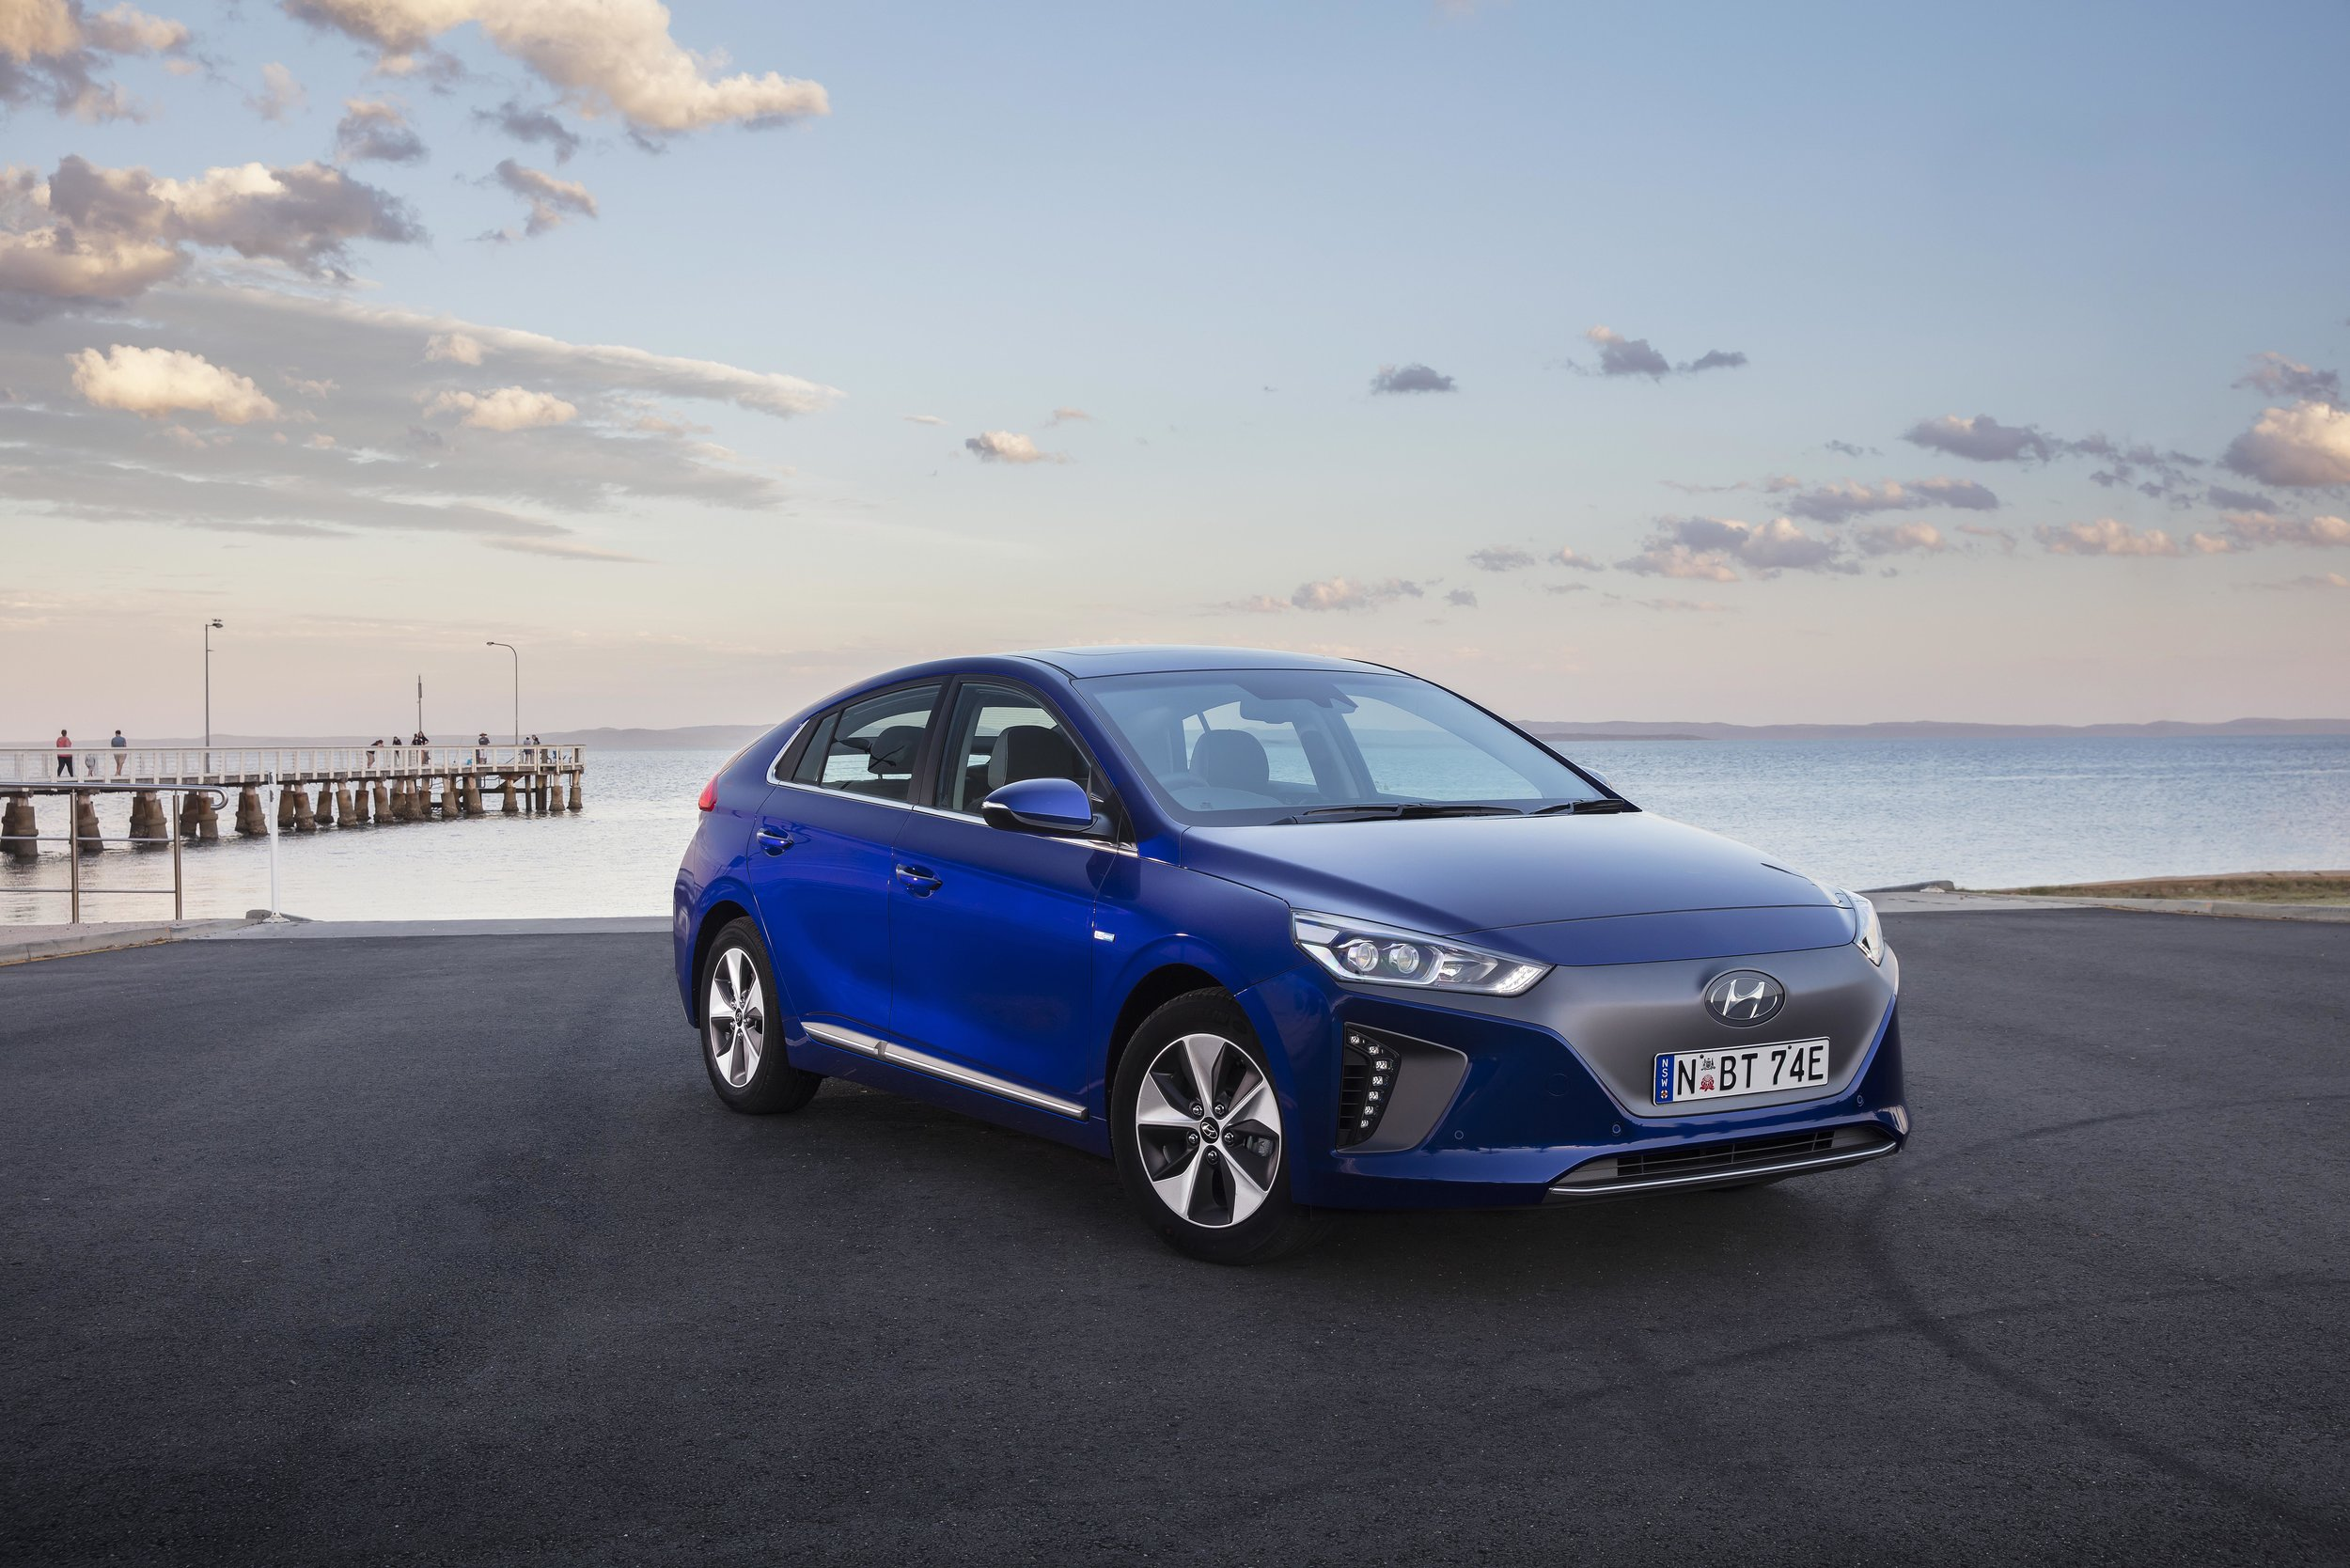 2019 IONIQ Electric Premium - 07.jpg